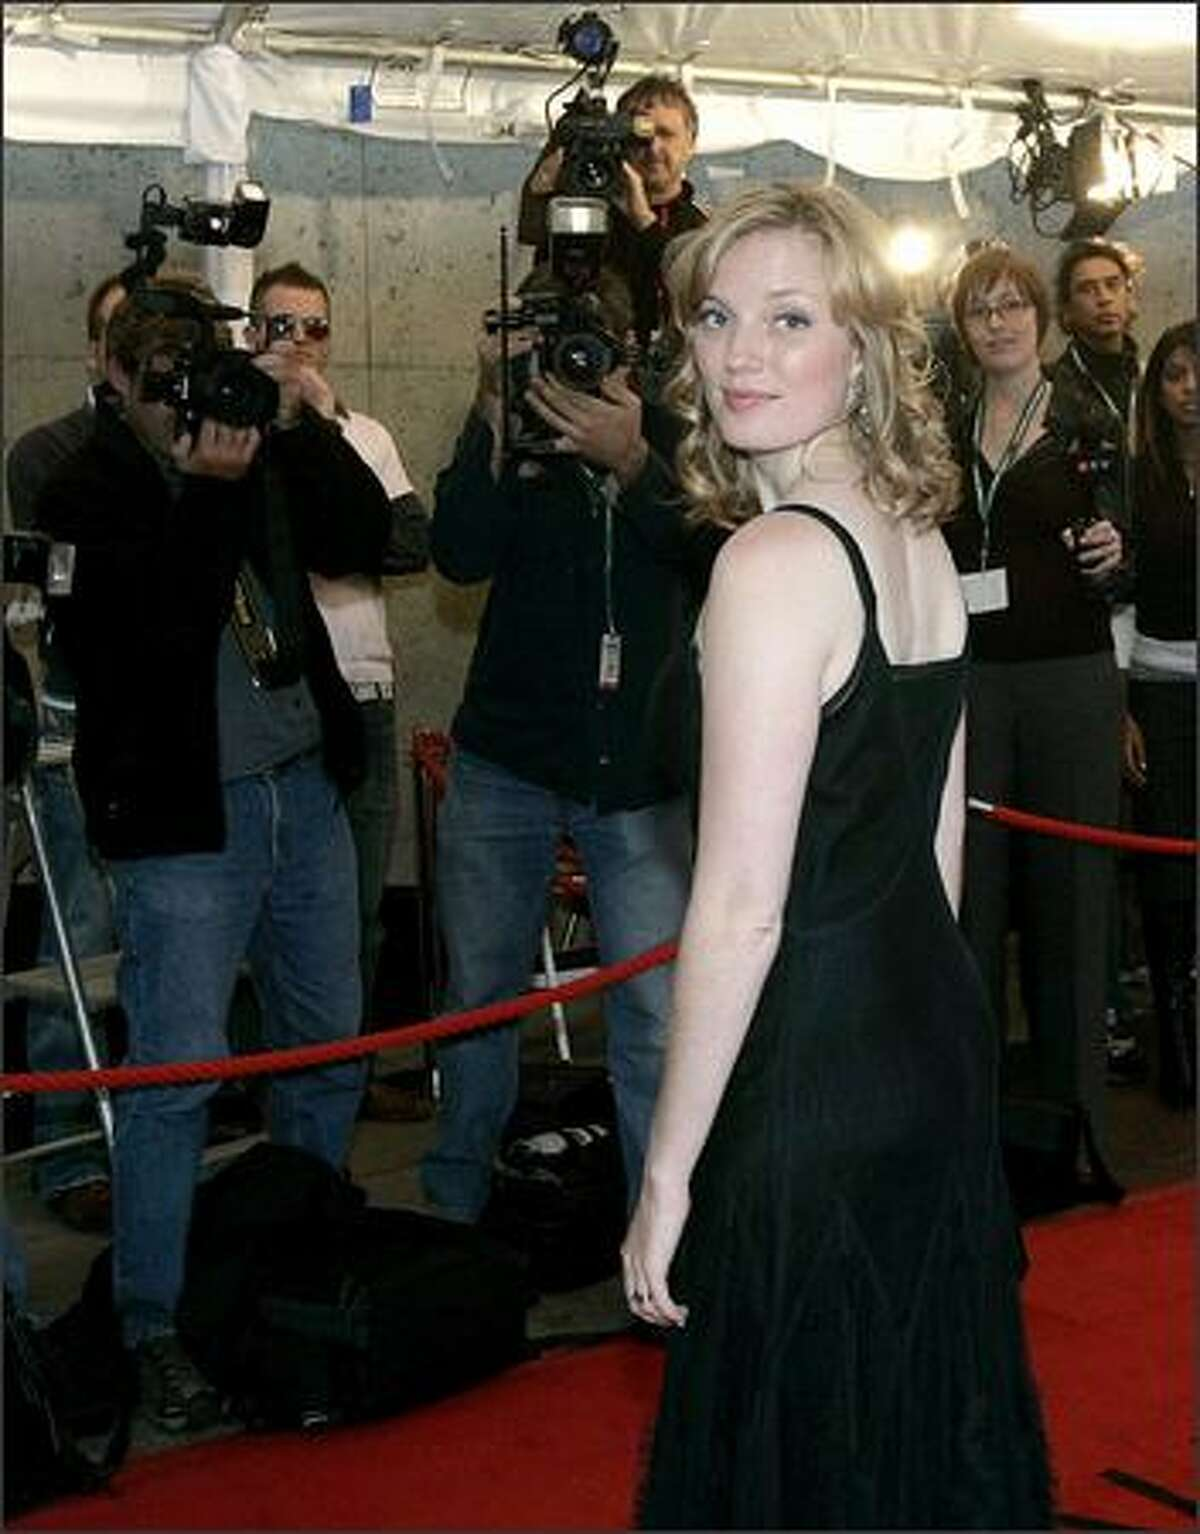 Director Sarah Polley poses for photographers while attending the